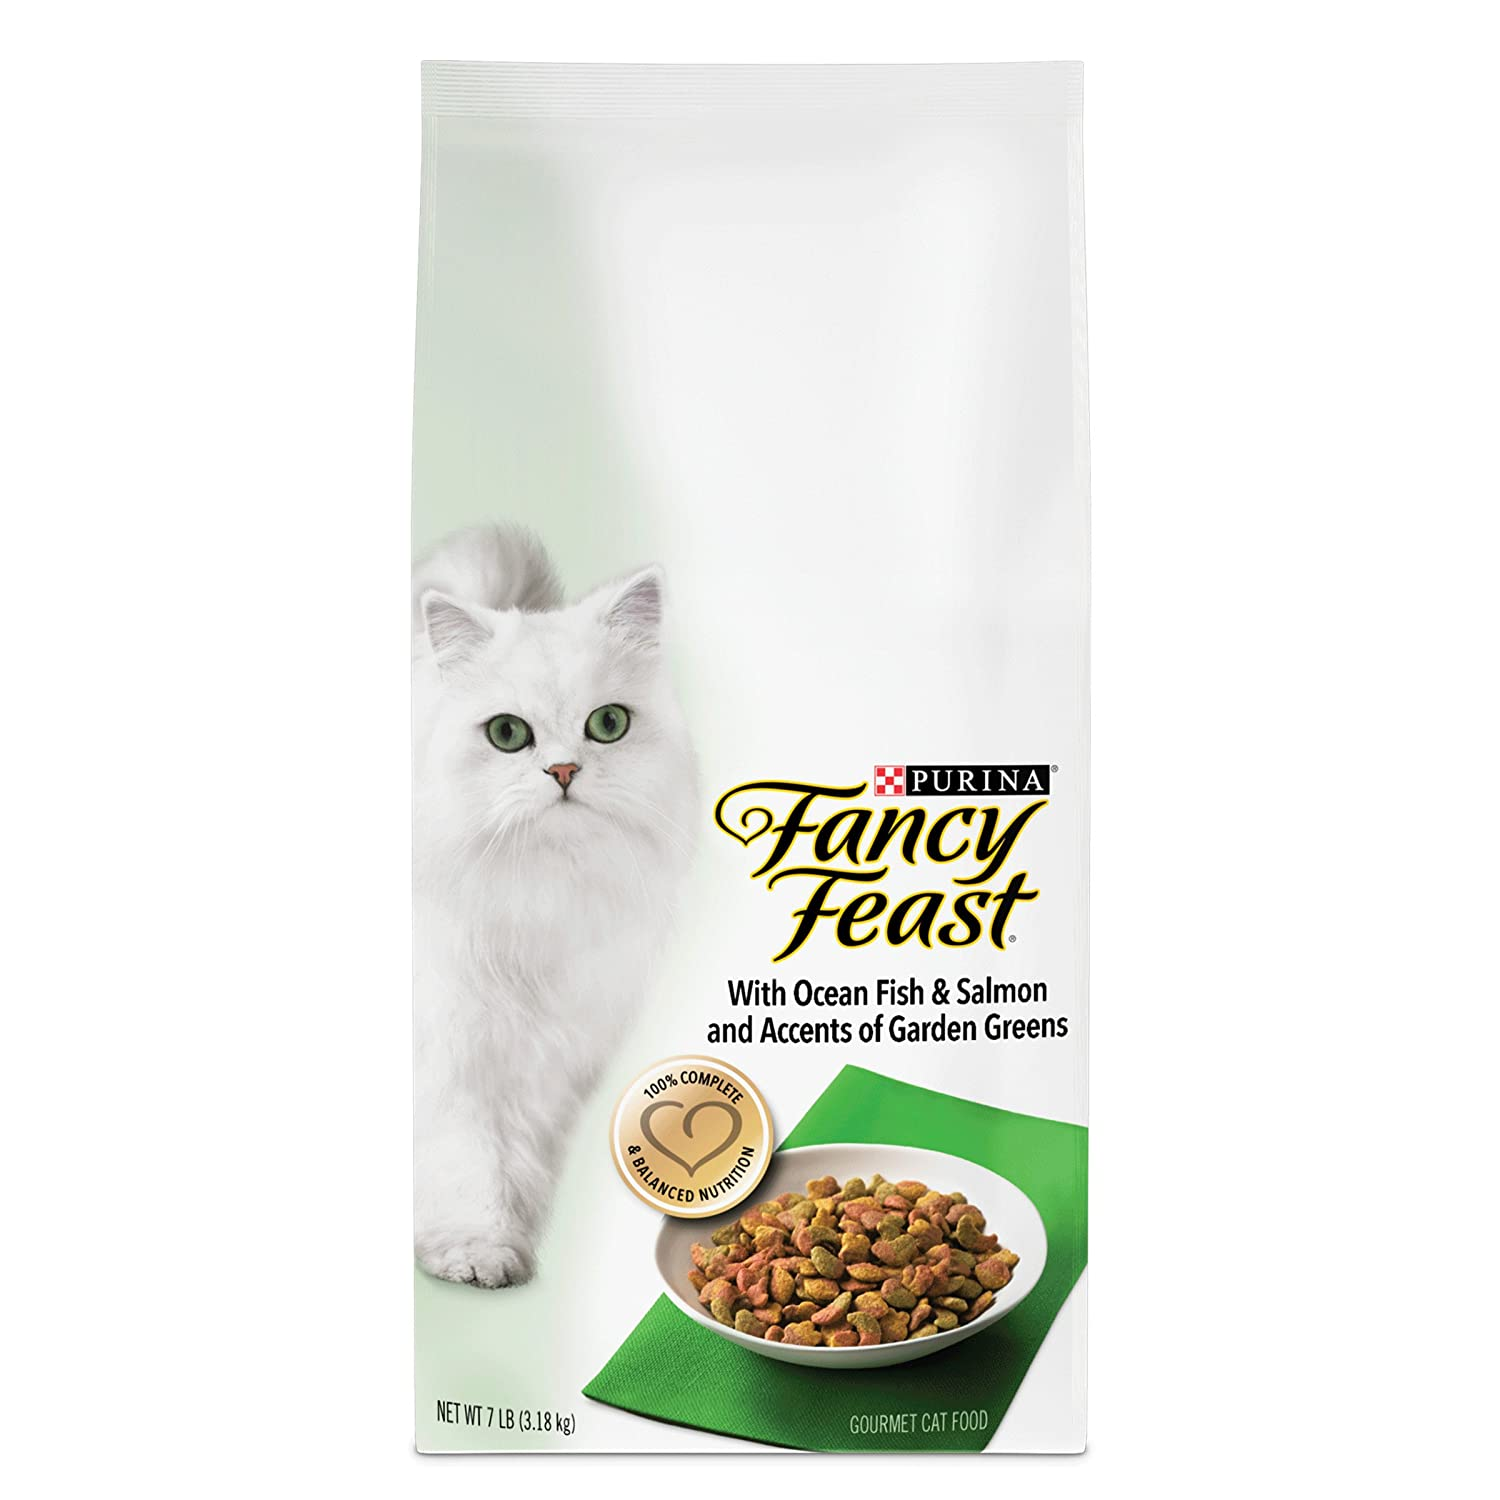 Purina Fancy Feast Gourmet Dry Cat Food with Ocean Fish and Salmon